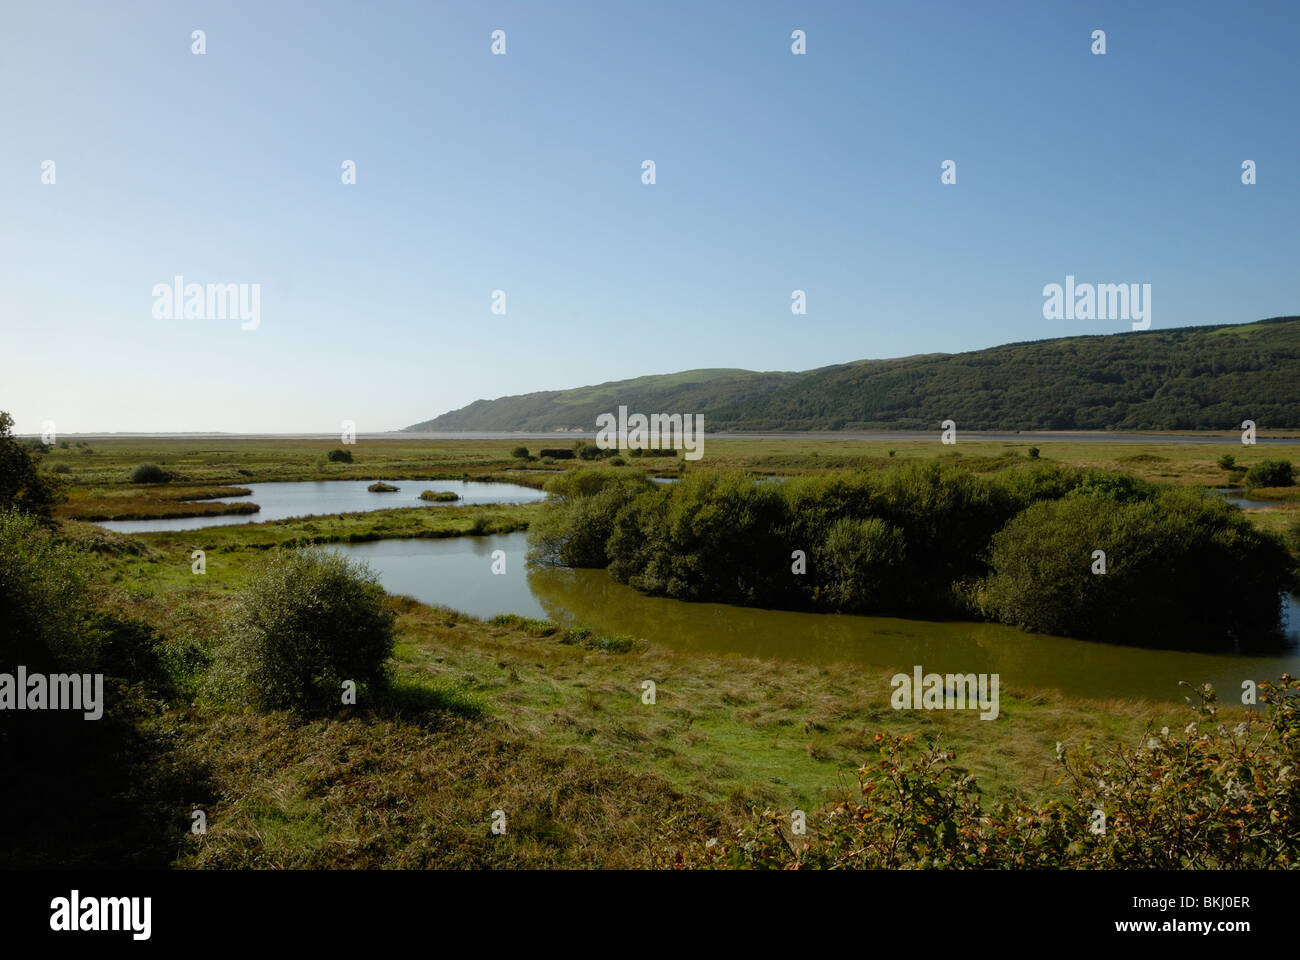 Marian Mawr pools with the Dyfi estuary behind, Ynys Hir RSPB Nature Reserve, Powys, Wales. Stock Photo